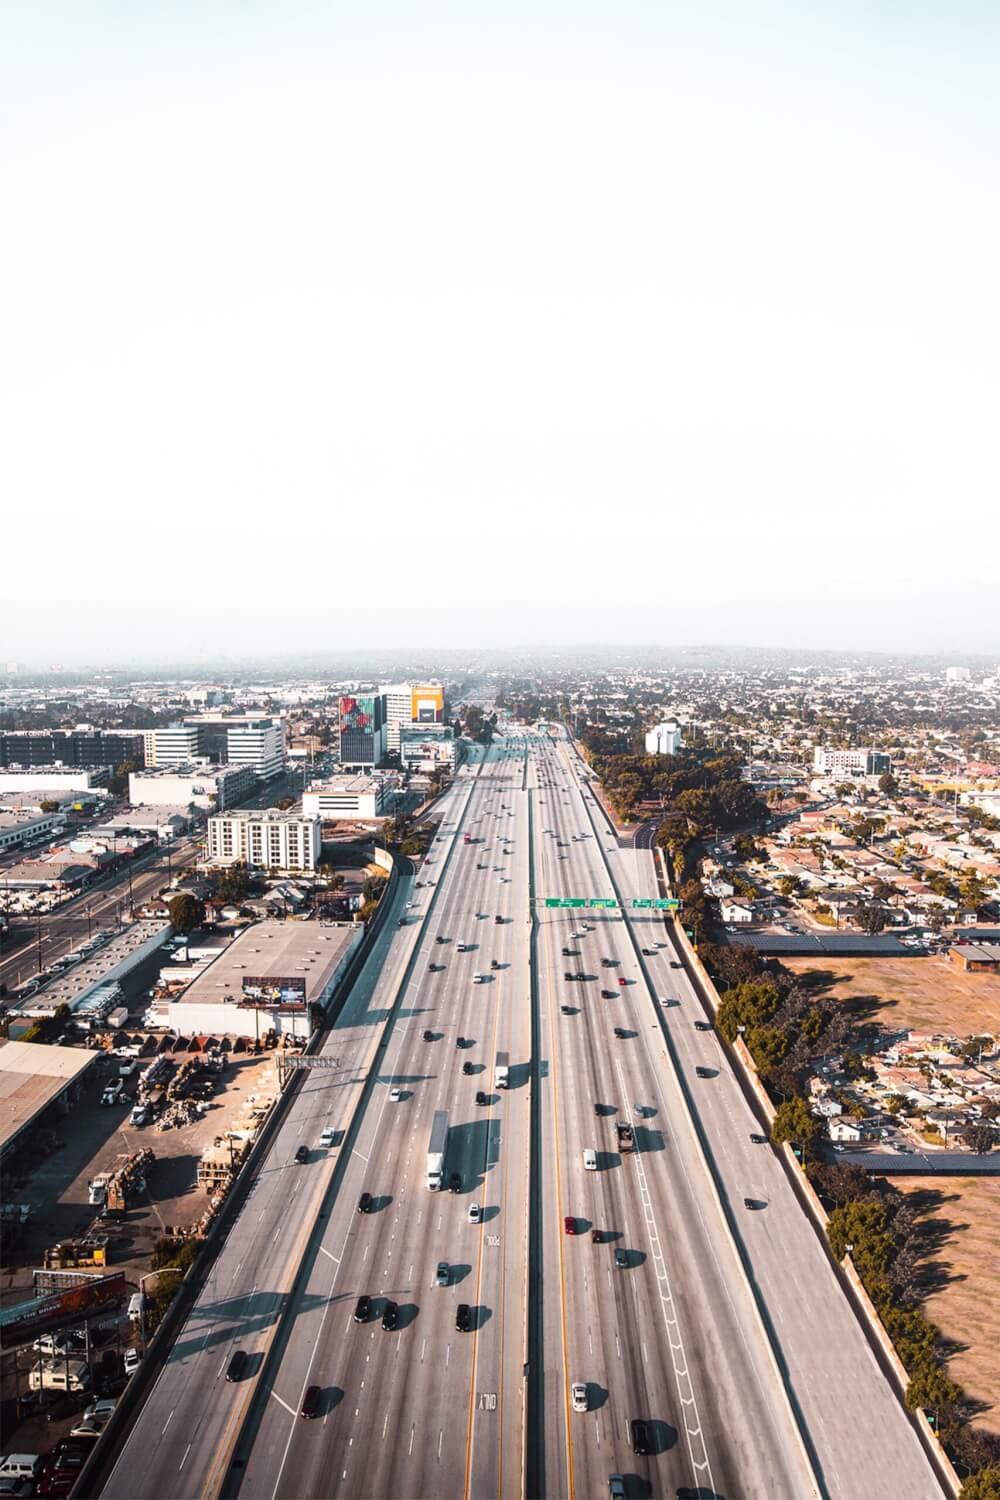 A view of a Los Angeles highway, showcasing the vast roads, plentiful lanes, and a prime location for car chases.